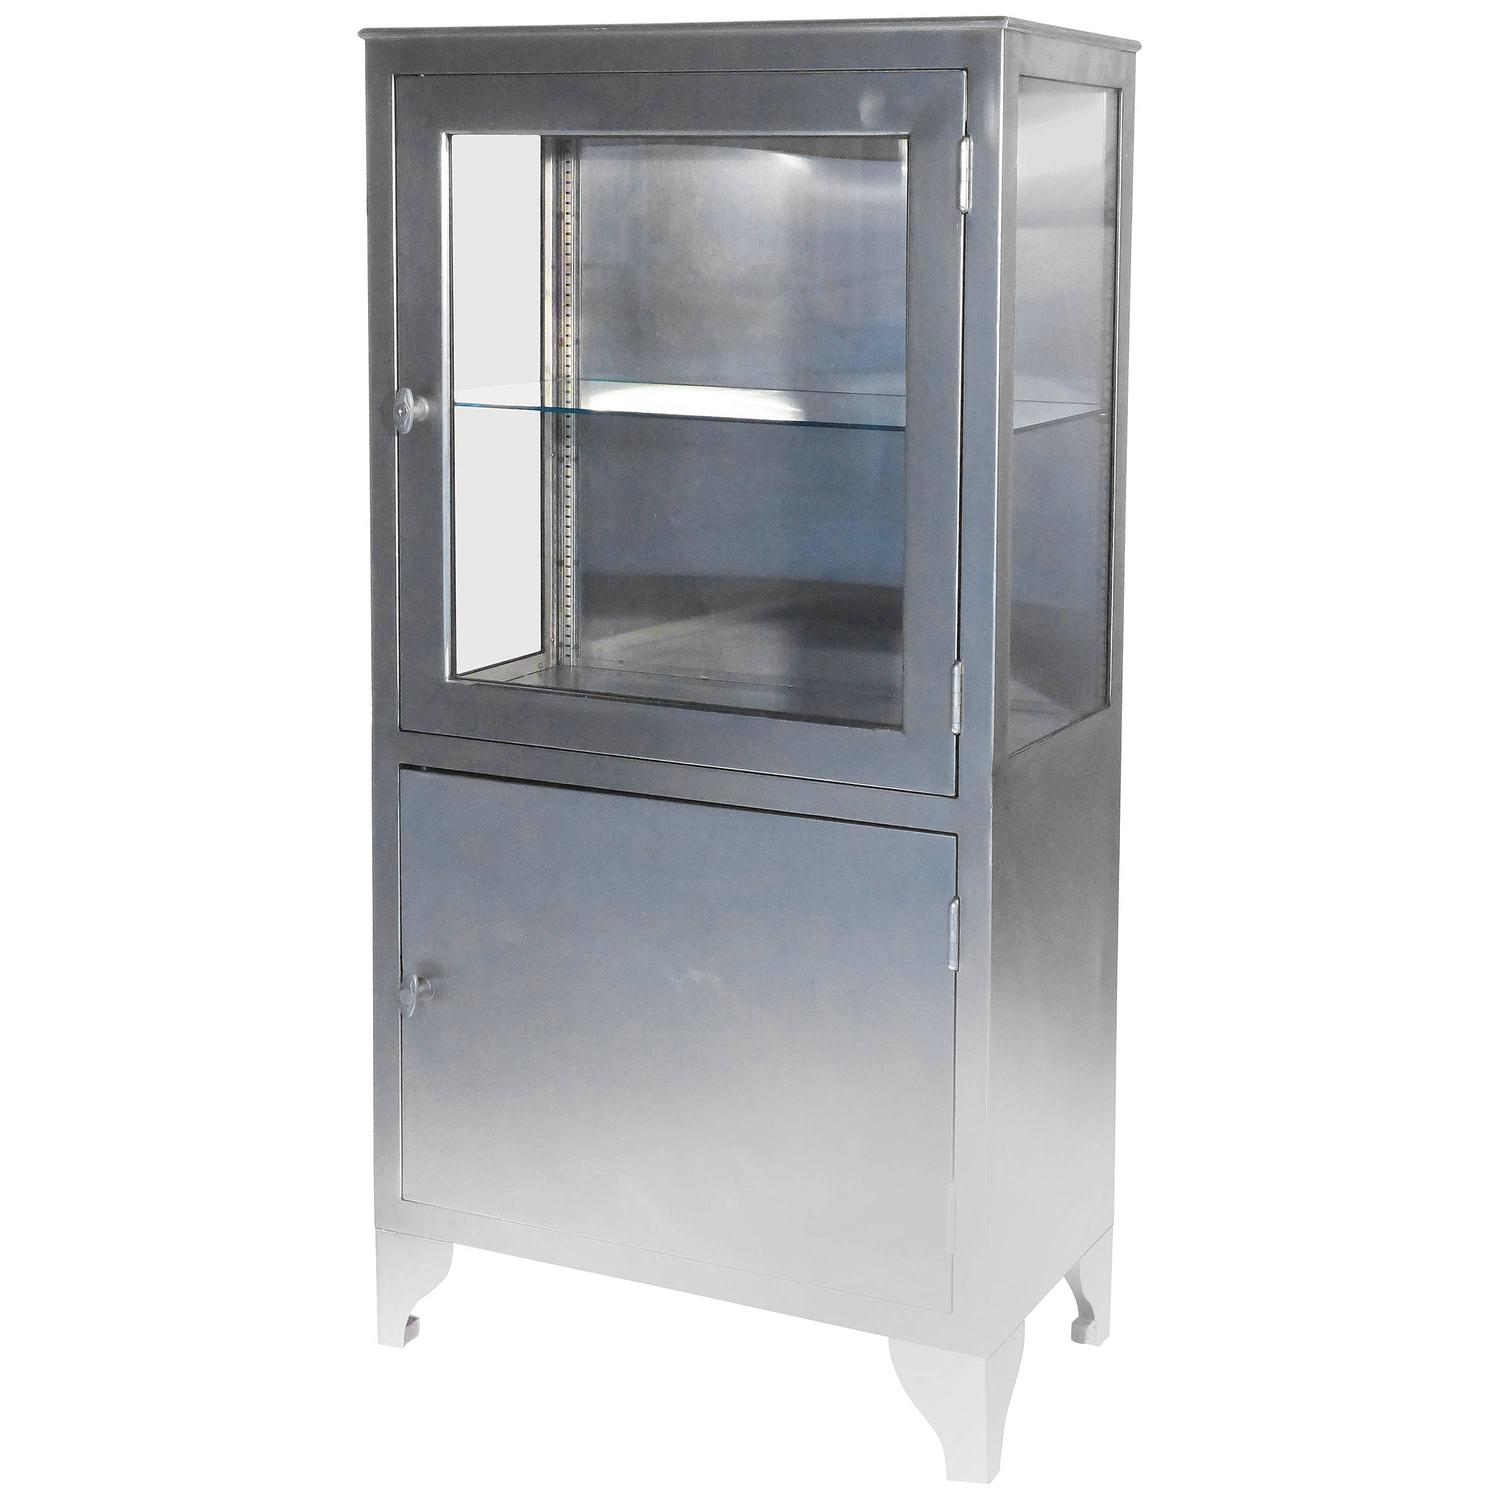 Us Army Stainless Steel Or Medical Display Cabinet By